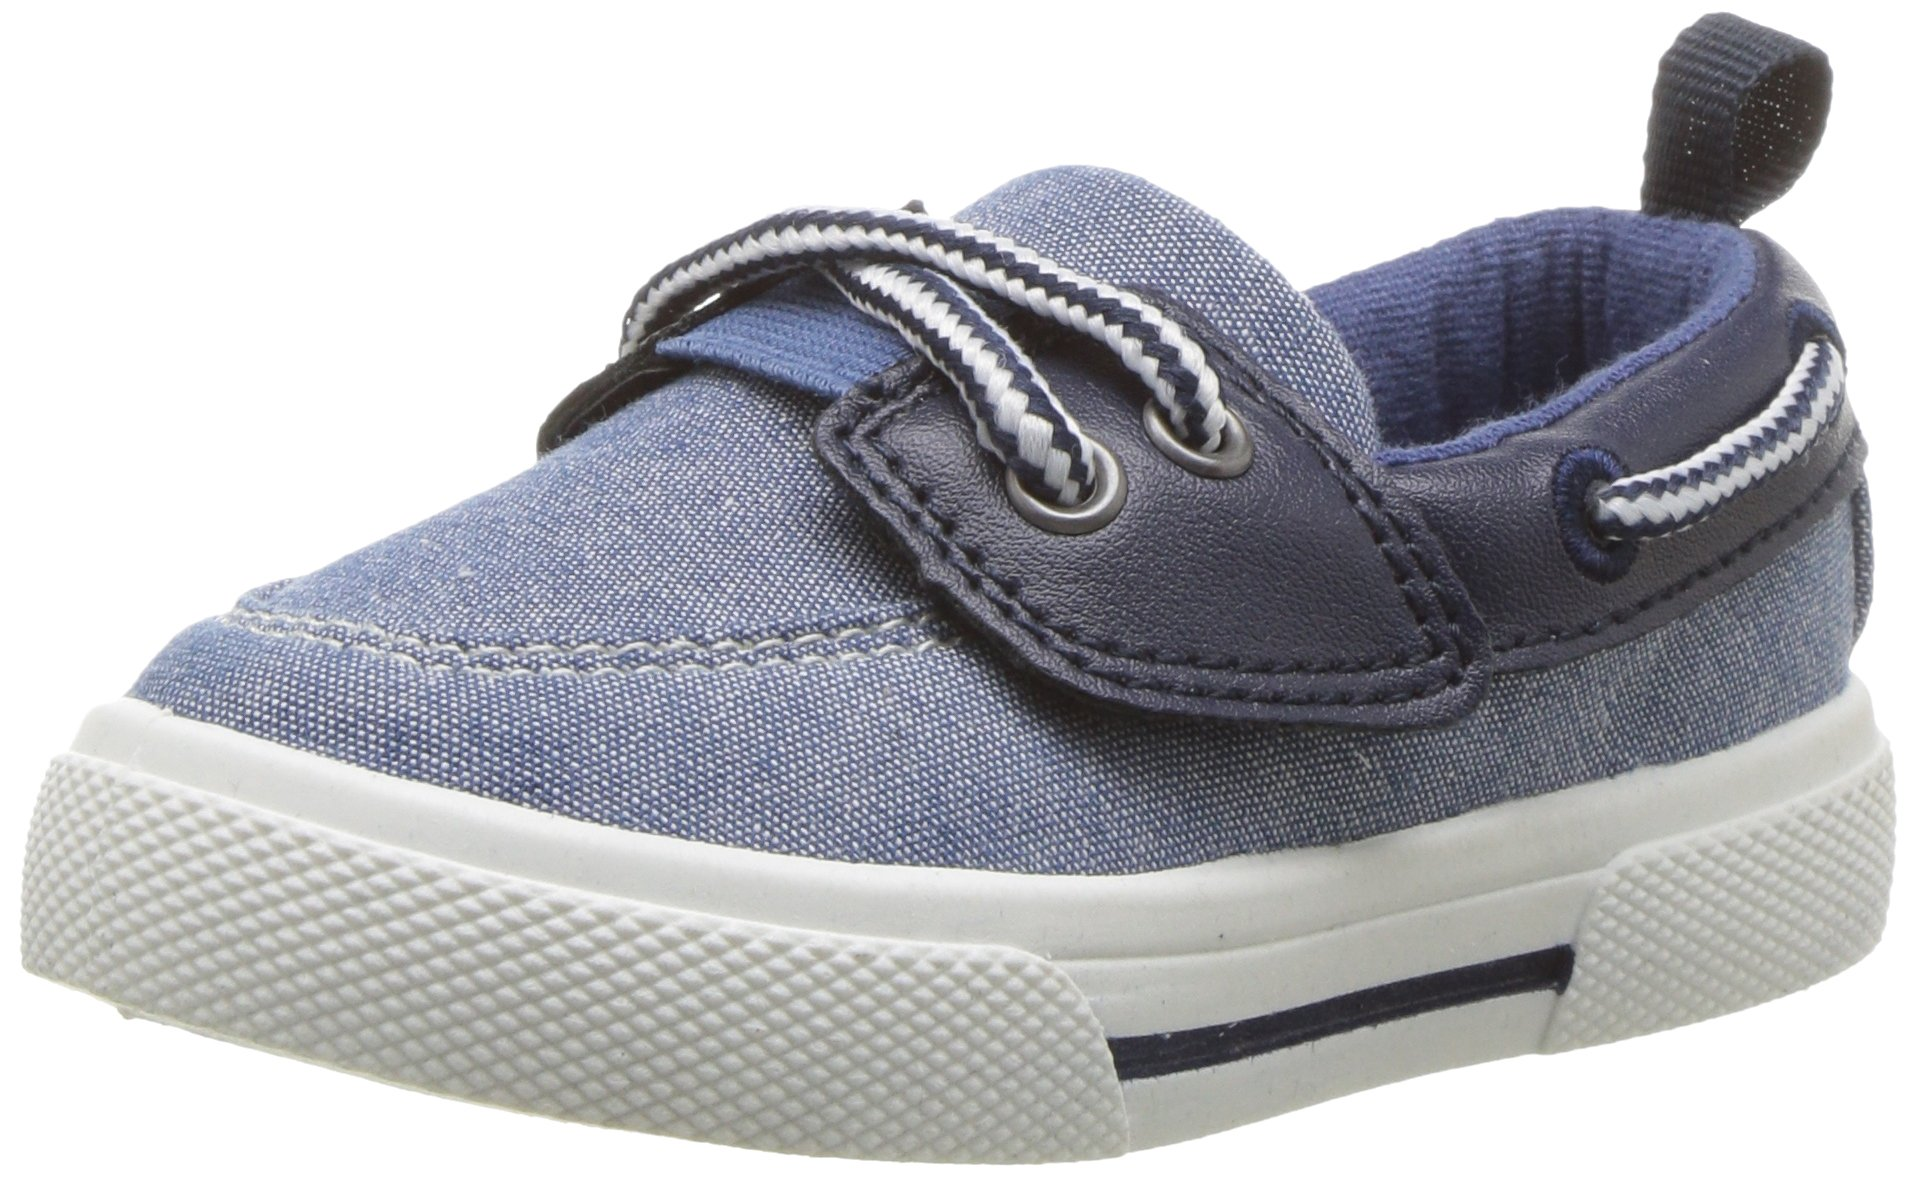 Carter's Boys' Cosmo Casual Slip-on Sneaker, Navy, 8 M US Toddler